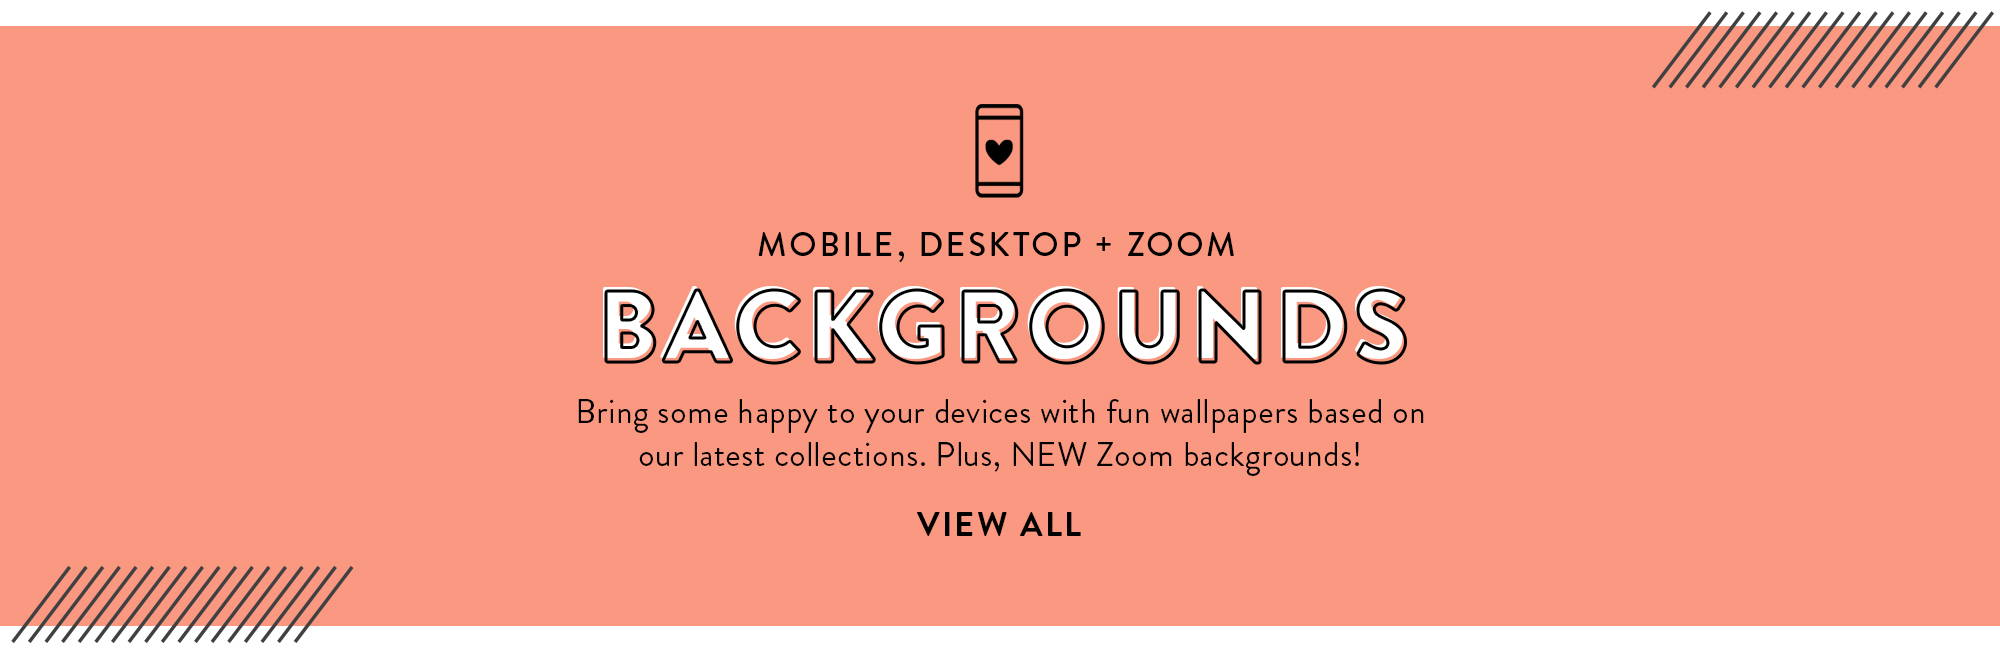 Mobile, Desktop + Zoom Background Downloads